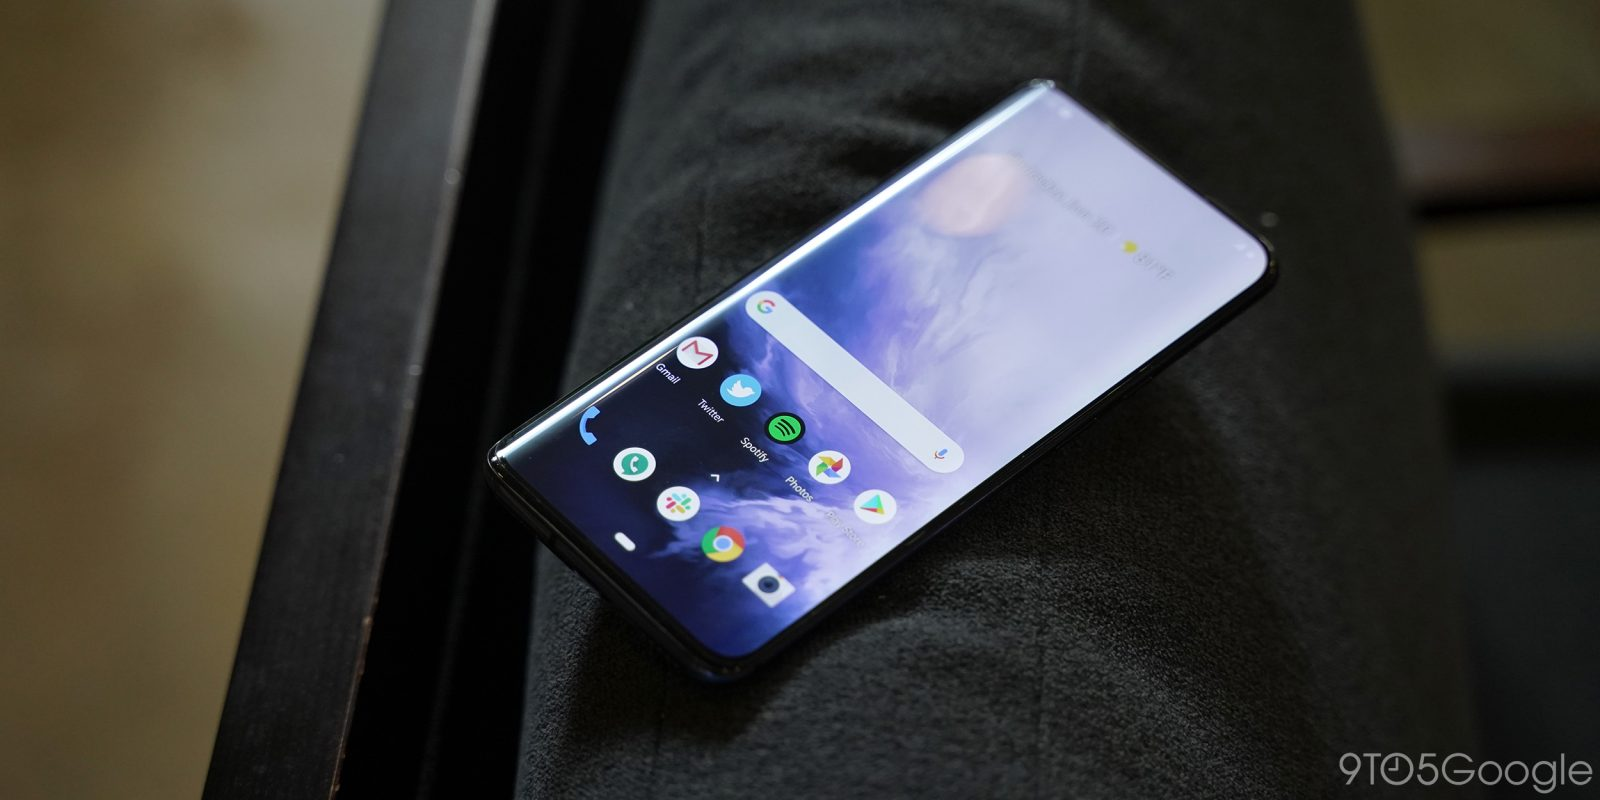 Android Q Dev Preview 4 rolls out for OnePlus 6/6T, 7/7 Pro